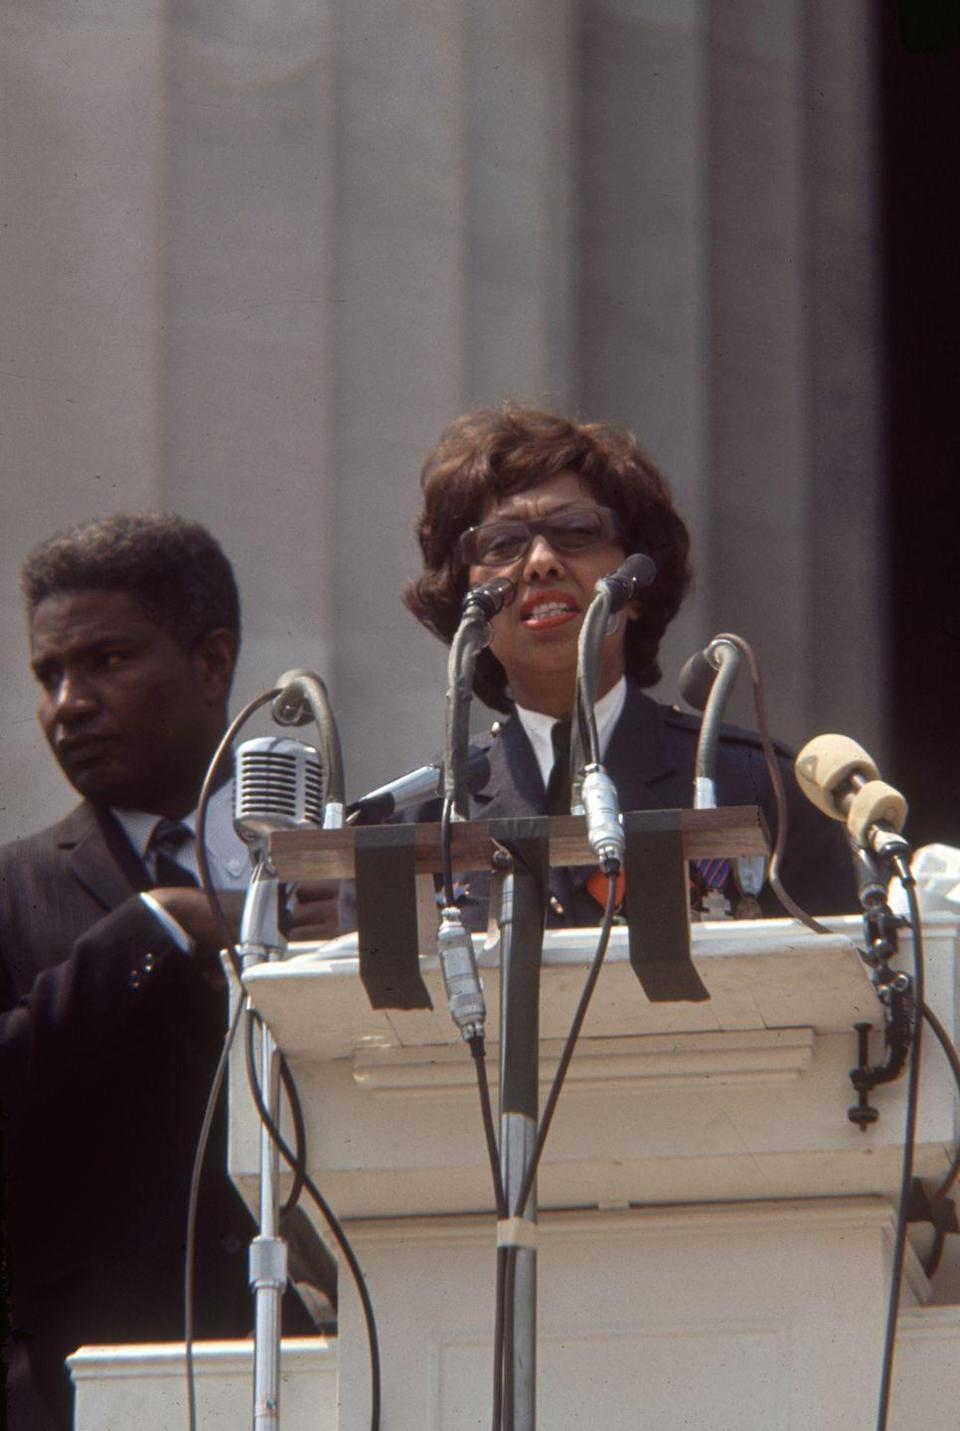 """<p>Baker venomously opposed segregation in the United States. In 1963, she joined Martin Luther King Jr. on the March on Washington and delivered a memorable speech to the crowd. She was the <a href=""""https://www.washingtonpost.com/lifestyle/style/march-on-washington-had-one-female-speaker-josephine-baker/2011/08/08/gIQAHqhBaJ_story.html"""" rel=""""nofollow noopener"""" target=""""_blank"""" data-ylk=""""slk:only woman who spoke"""" class=""""link rapid-noclick-resp"""">only woman who spoke</a> at the event. </p>"""